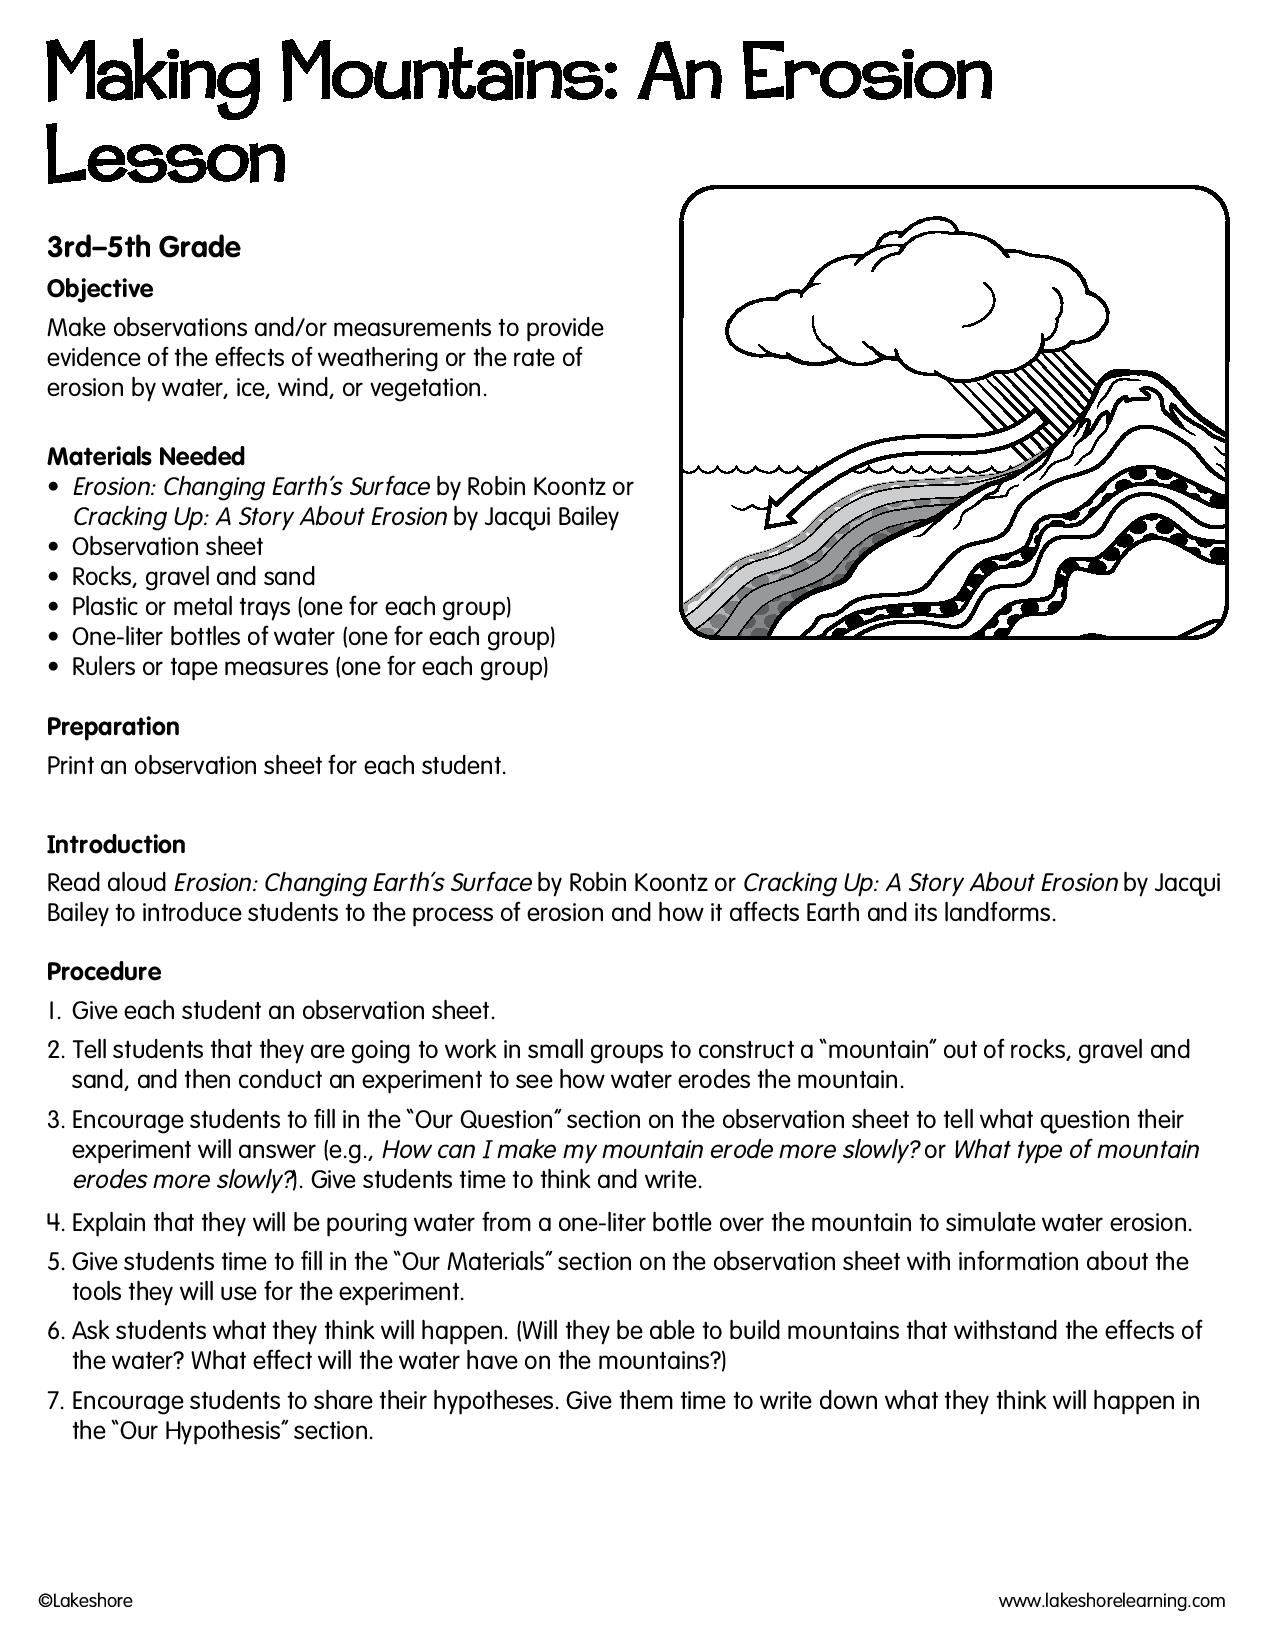 Making Mountains An Erosion Lesson Lessonplan Science Erosion Lessons 3rd Grade Writing Prompts Paragraph Writing Worksheets